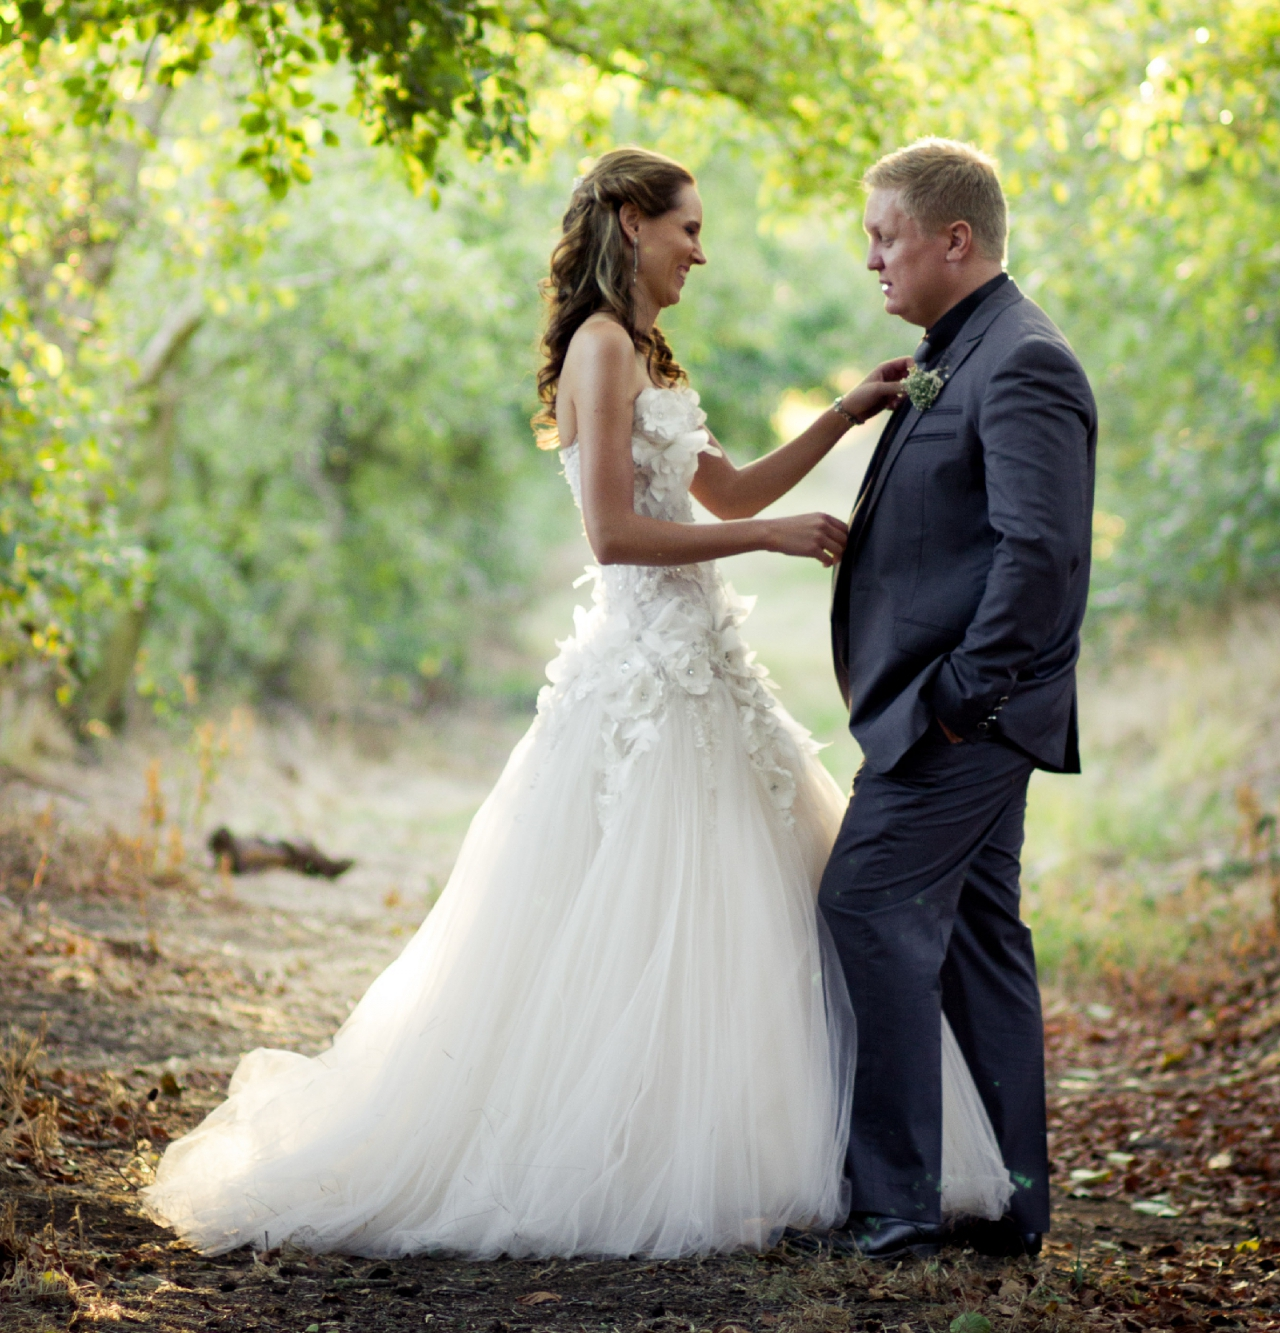 Where Can I Sell My Wedding Dress In Cape Town